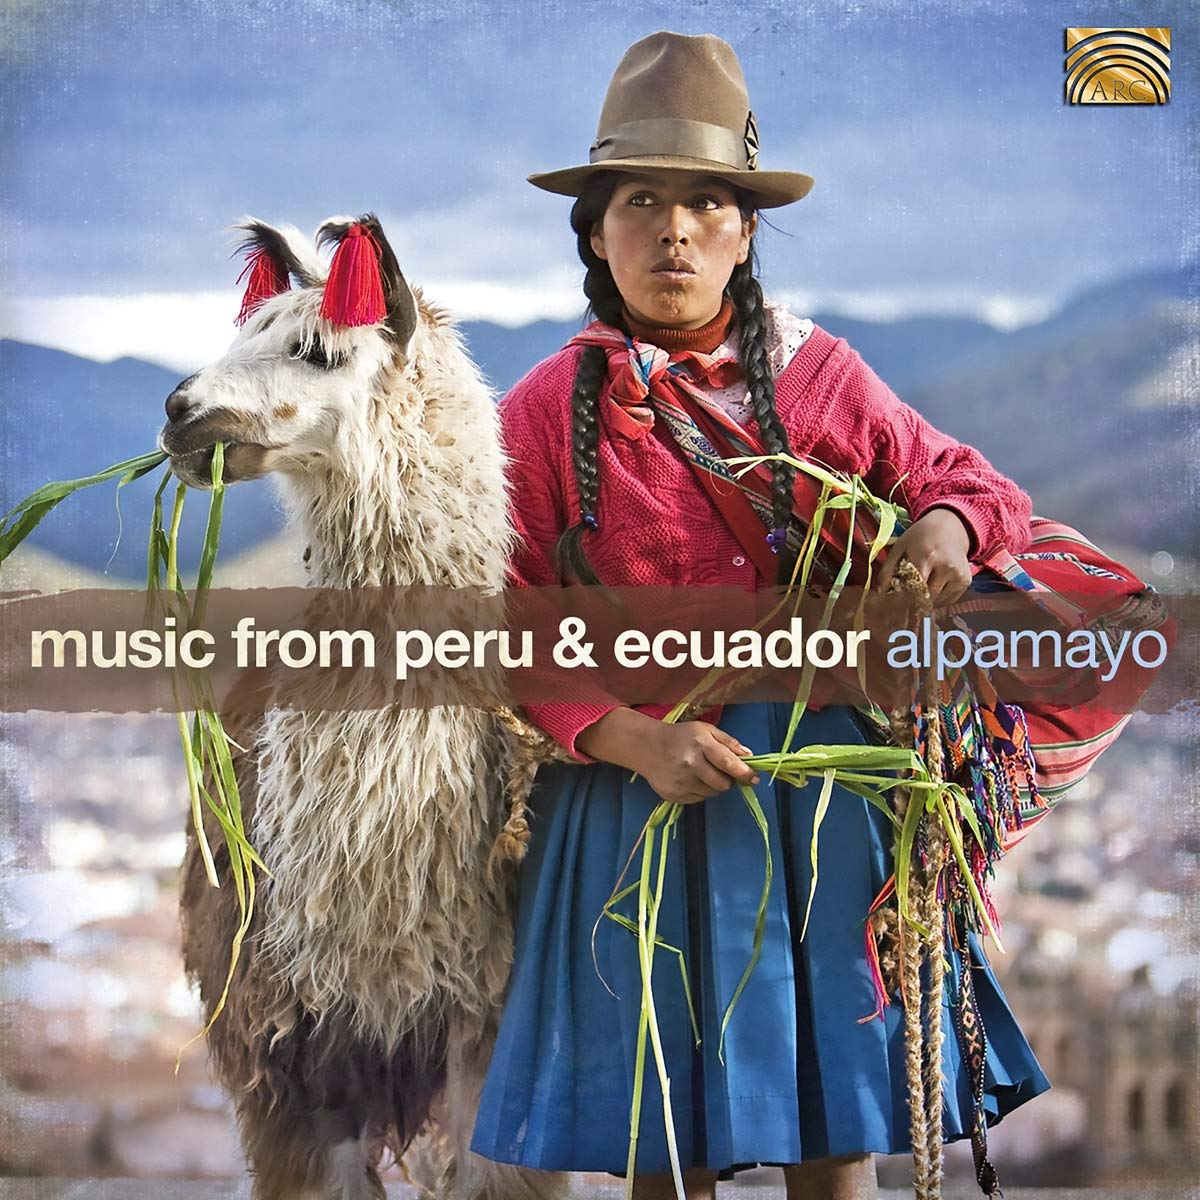 Music from Peru & Ecuador by Arc Music